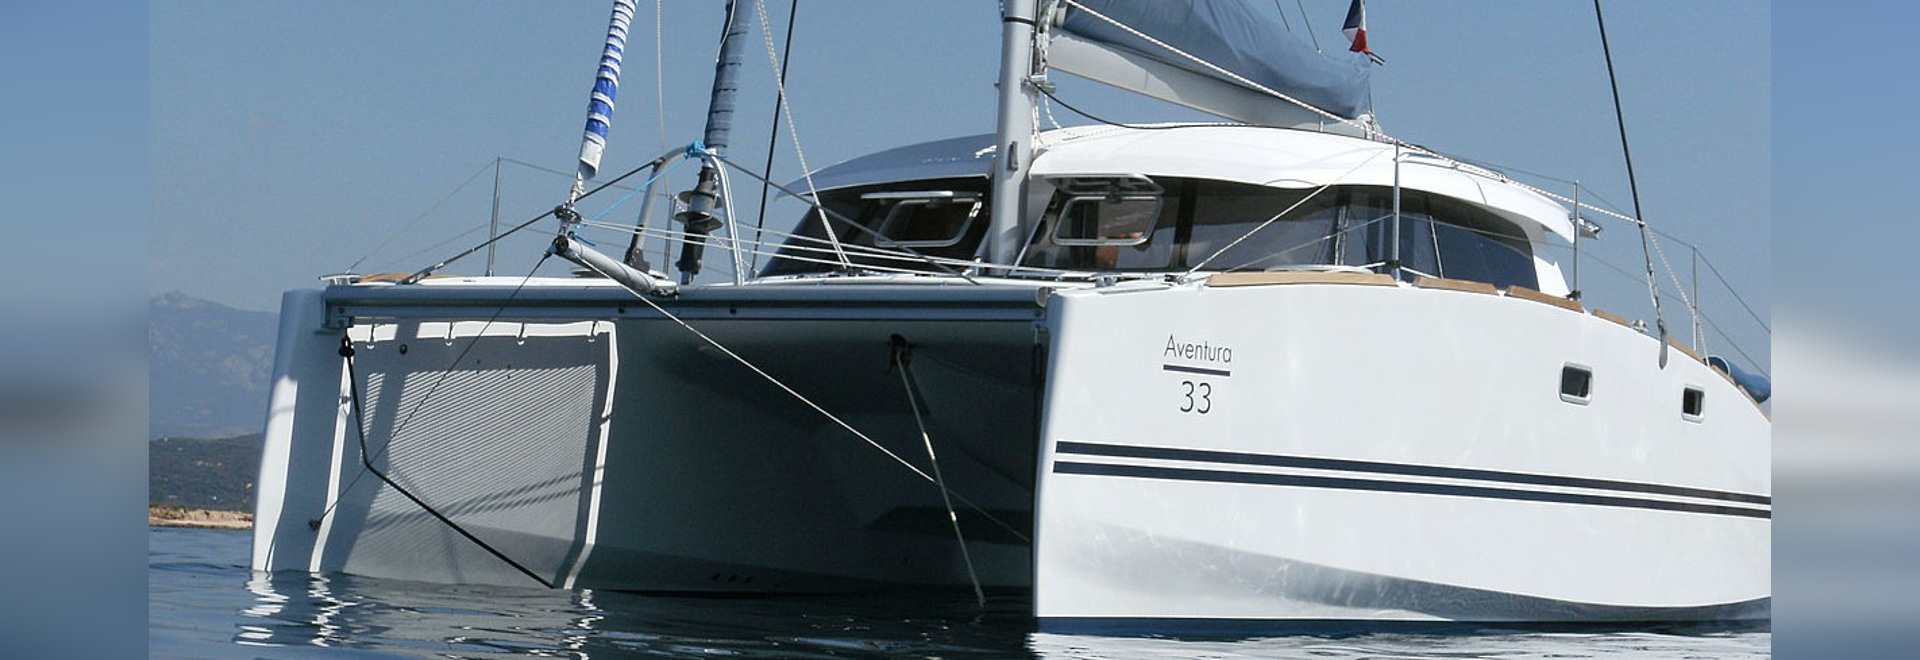 The Aventura 33 Evo2 world first in the multihull boat show